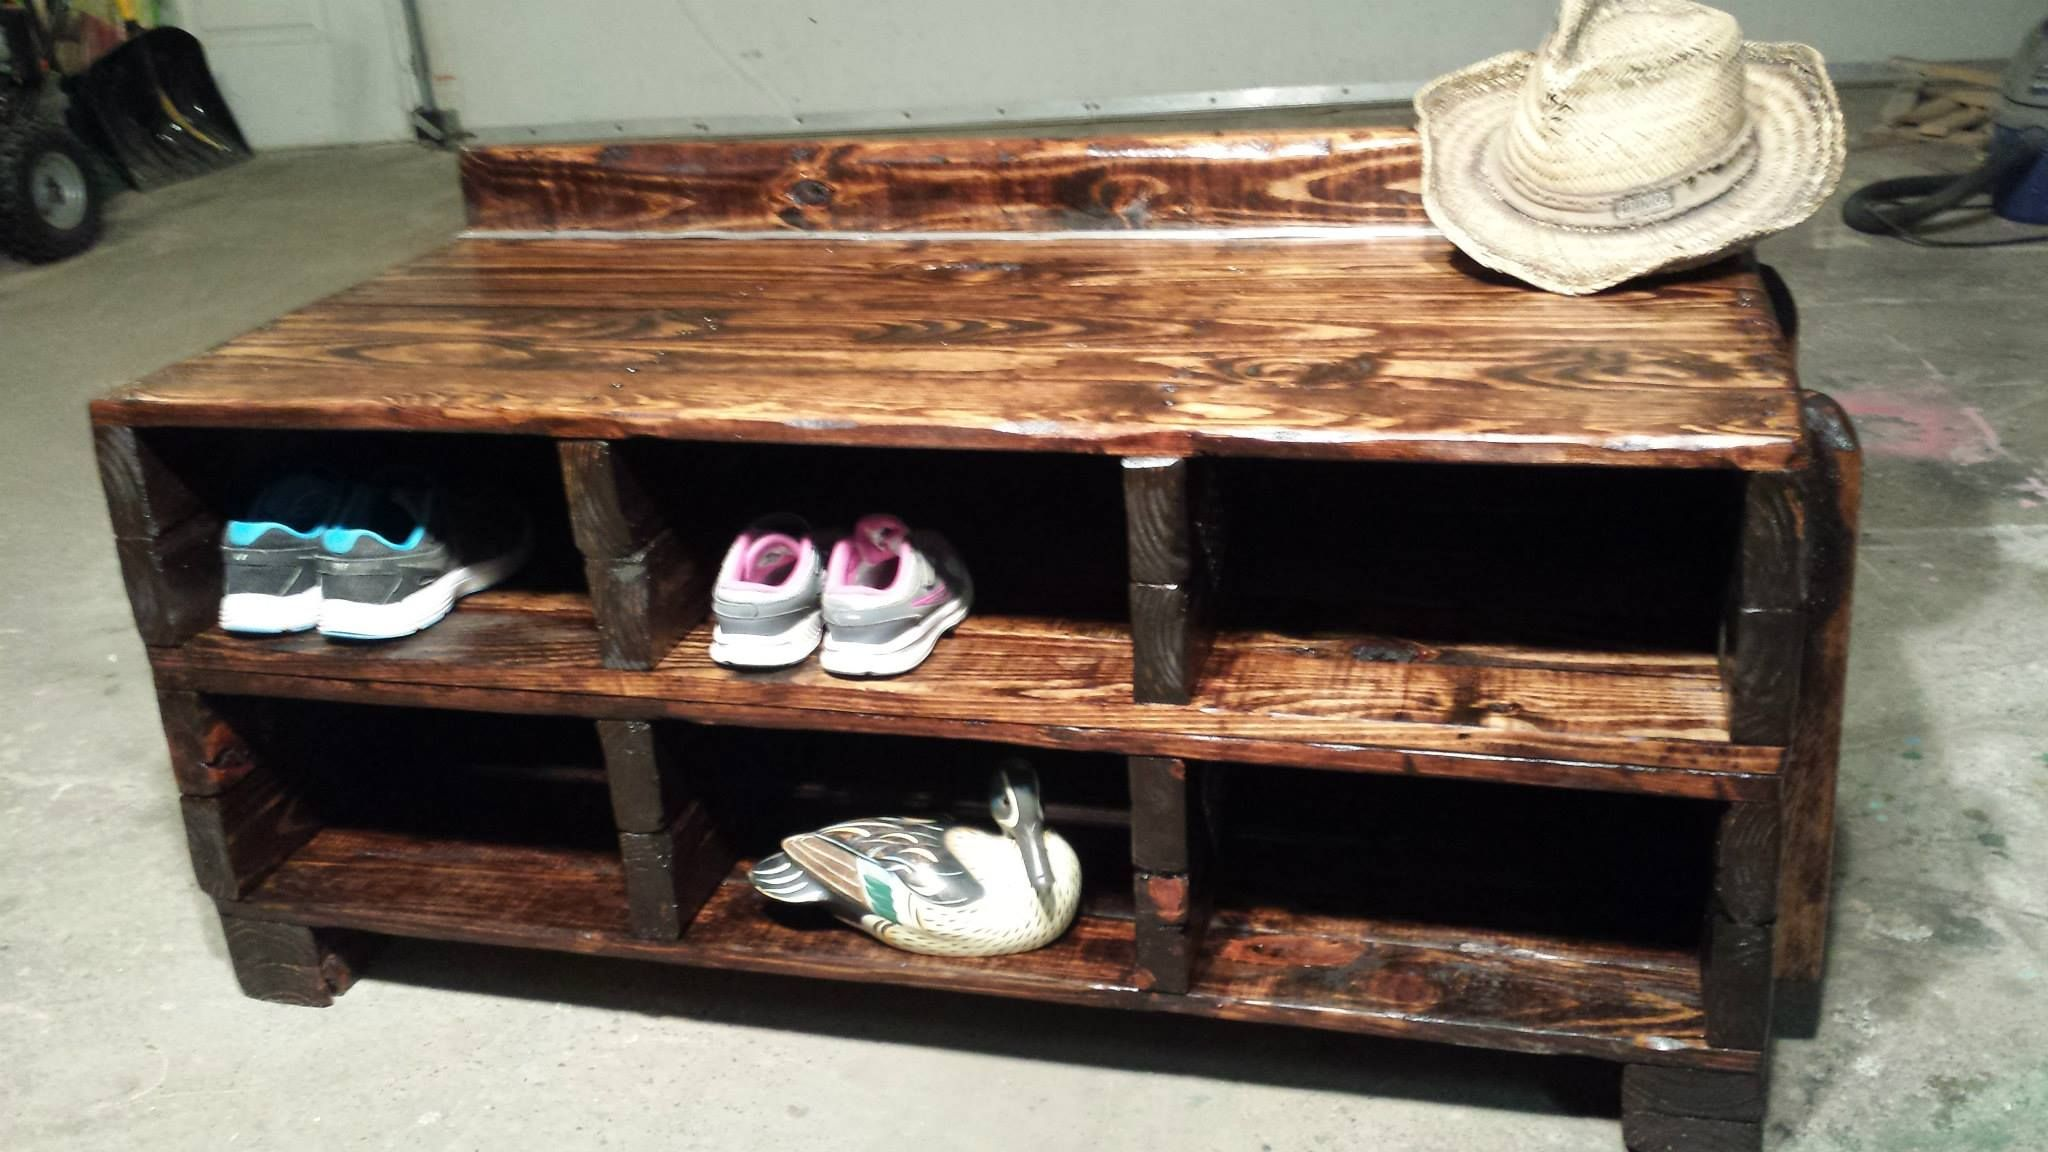 Entry Way Bench Shelf For Shoes Things Handmade From Re Claimed